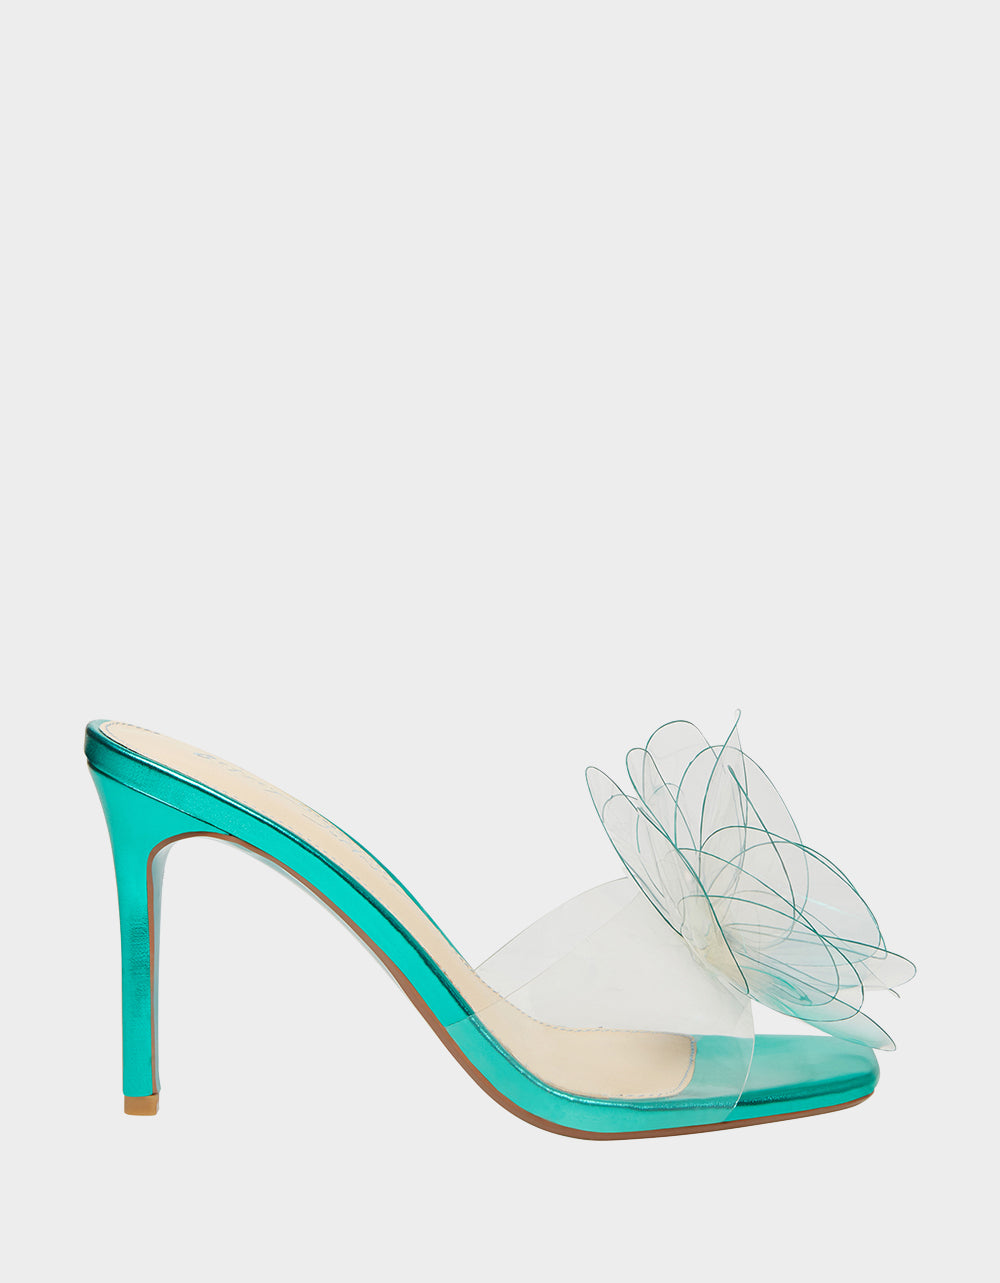 SB-DULCE GREEN - SHOES - Betsey Johnson